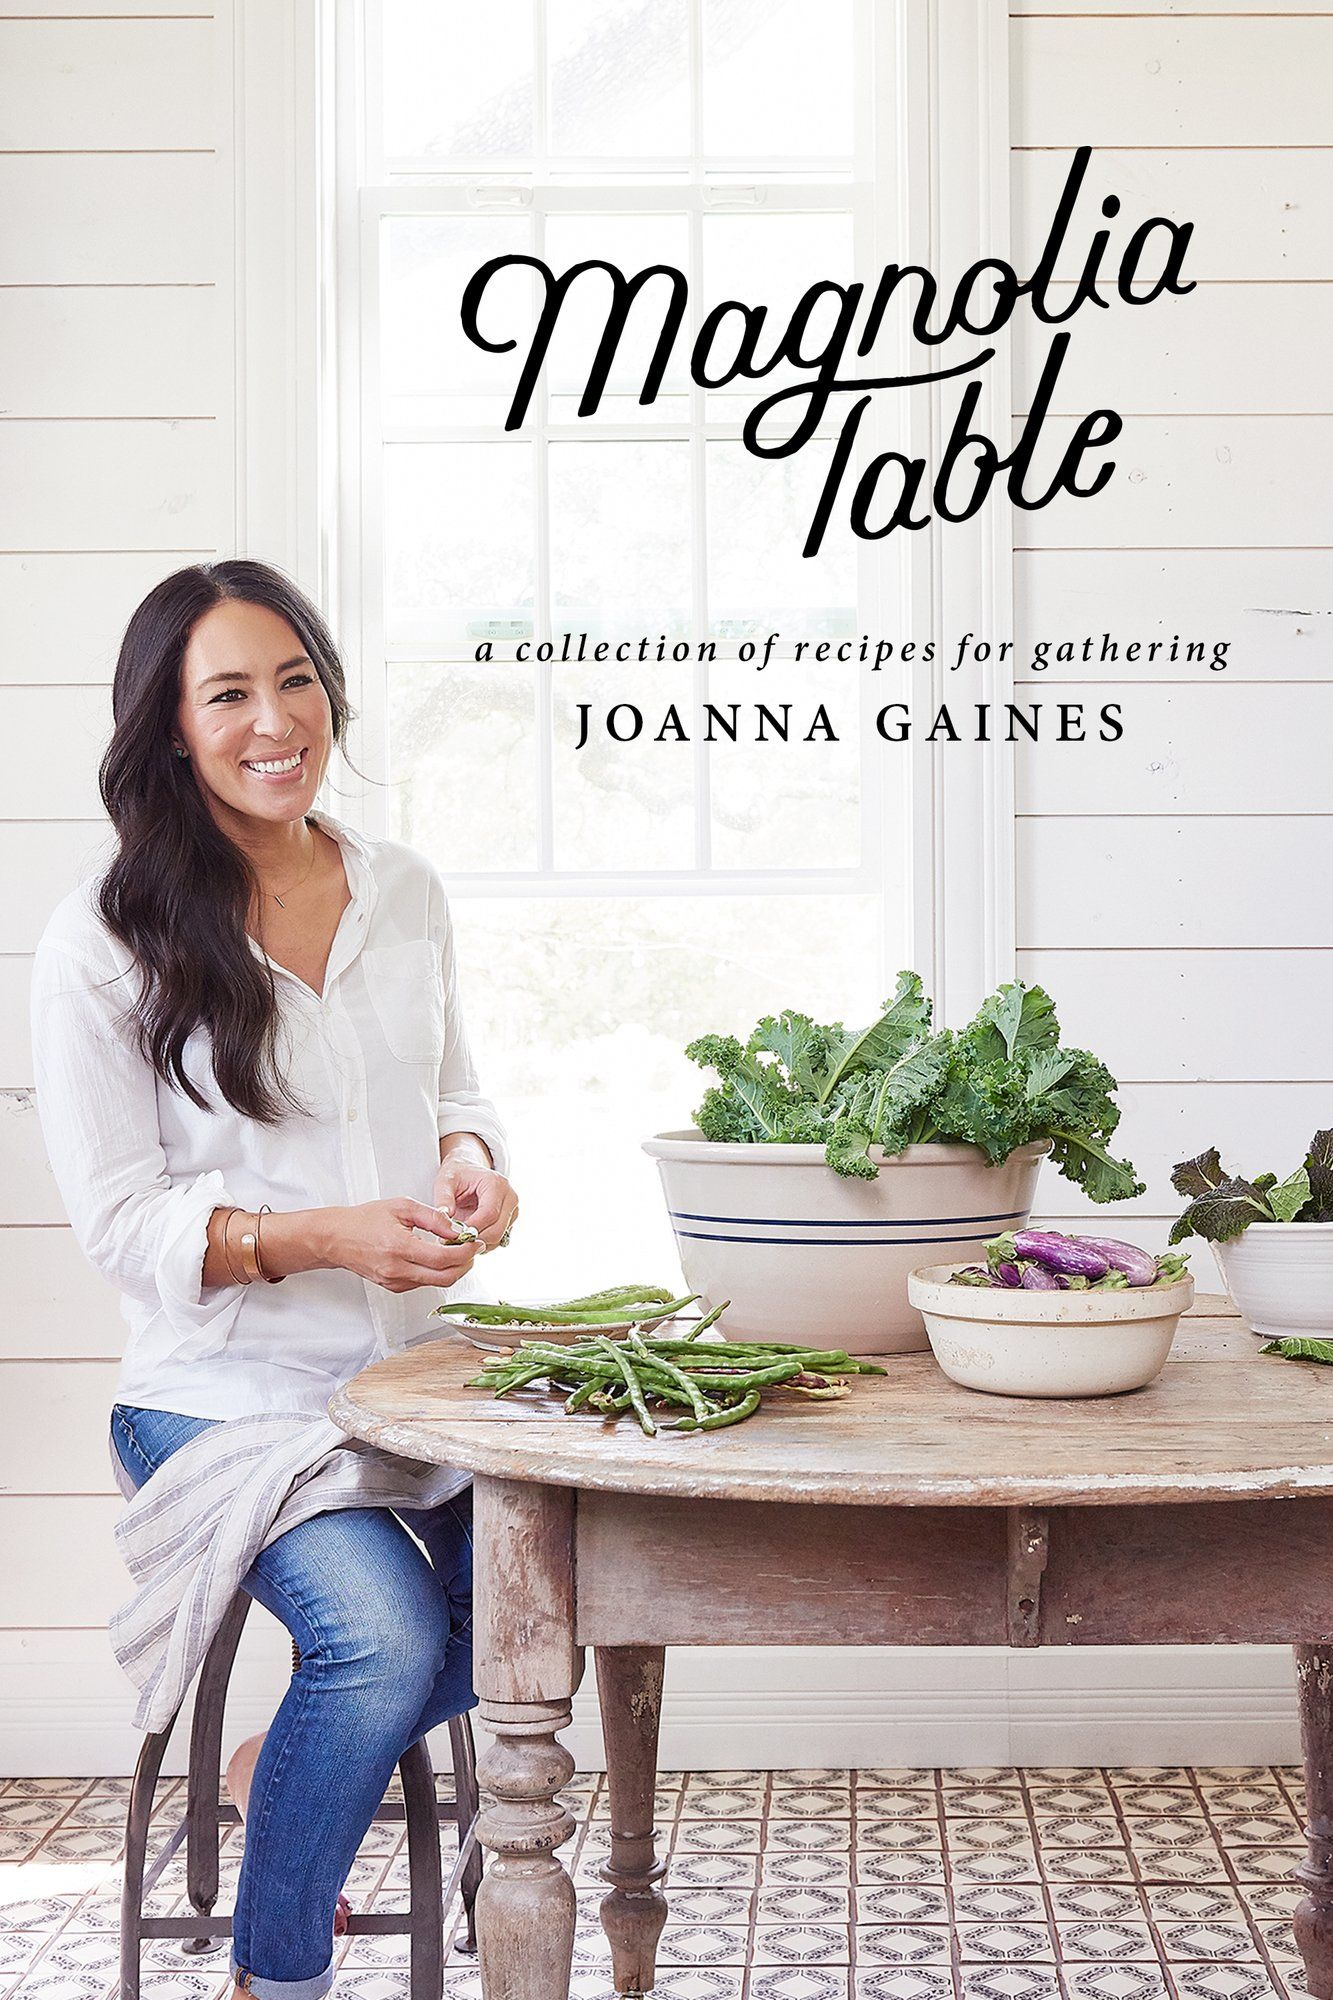 Merry Early Christmas To Us: Joanna Gaines Just Revealed Recipes from Her Upcoming Cookbook